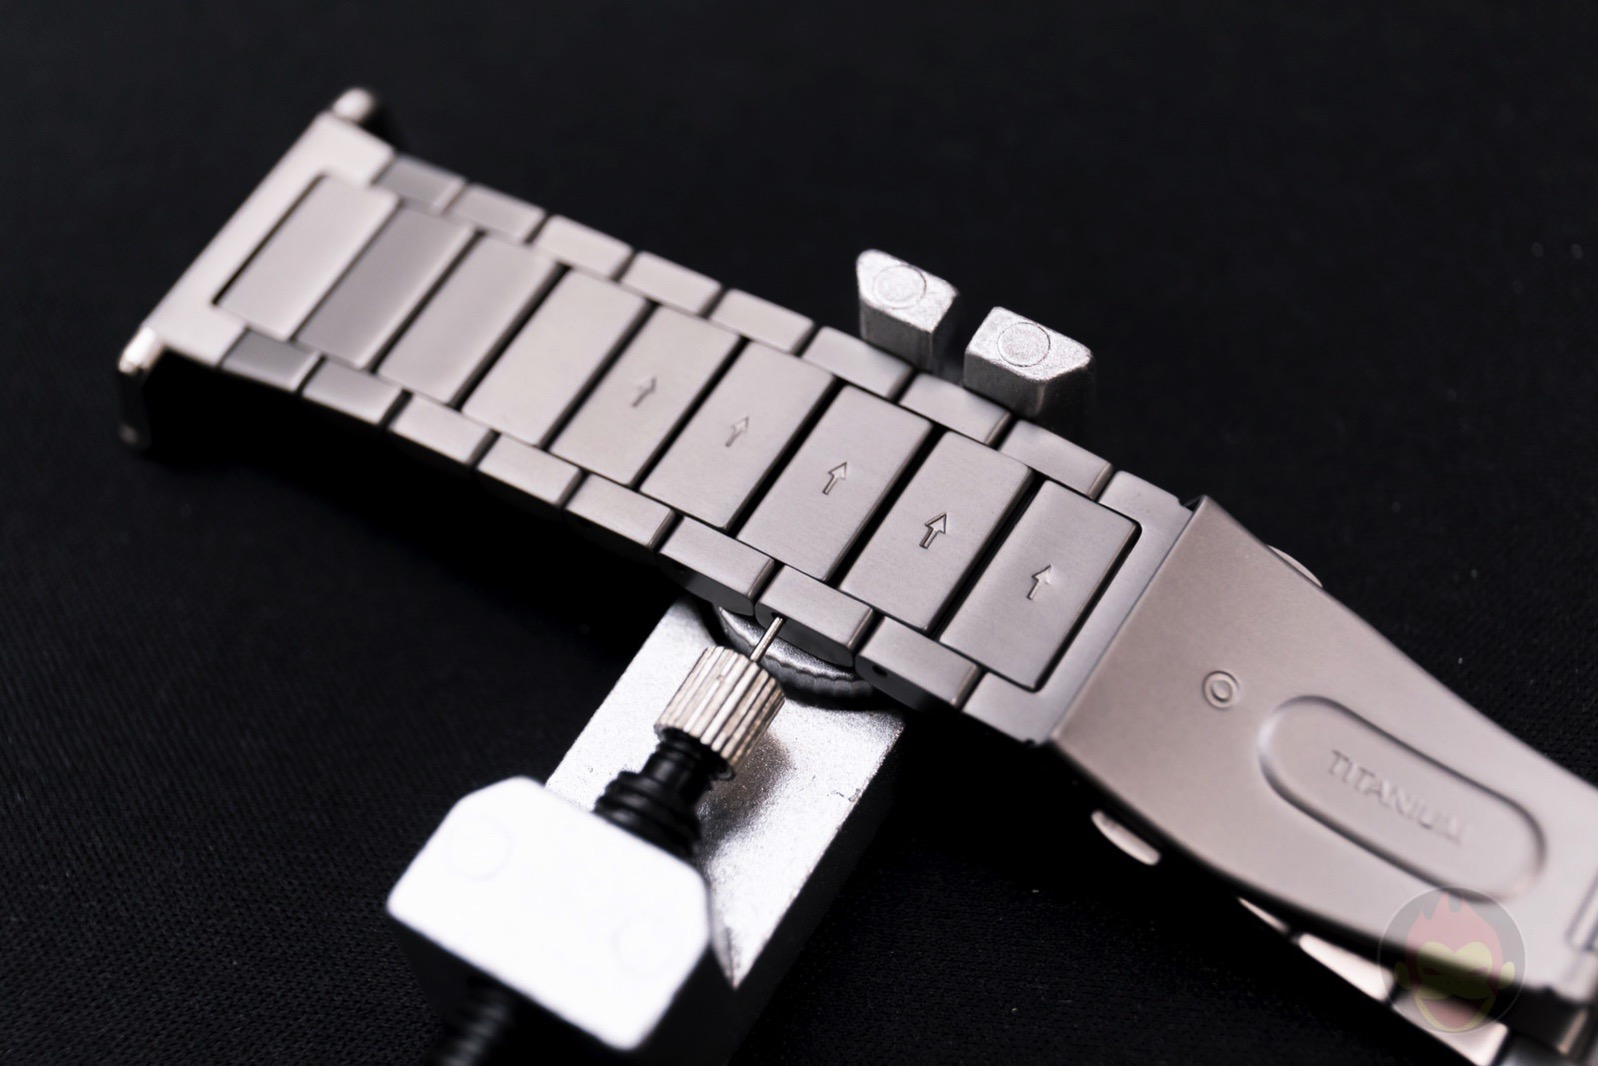 Apple-Watch-Nomad-Titanium-Band-Review-26.jpg